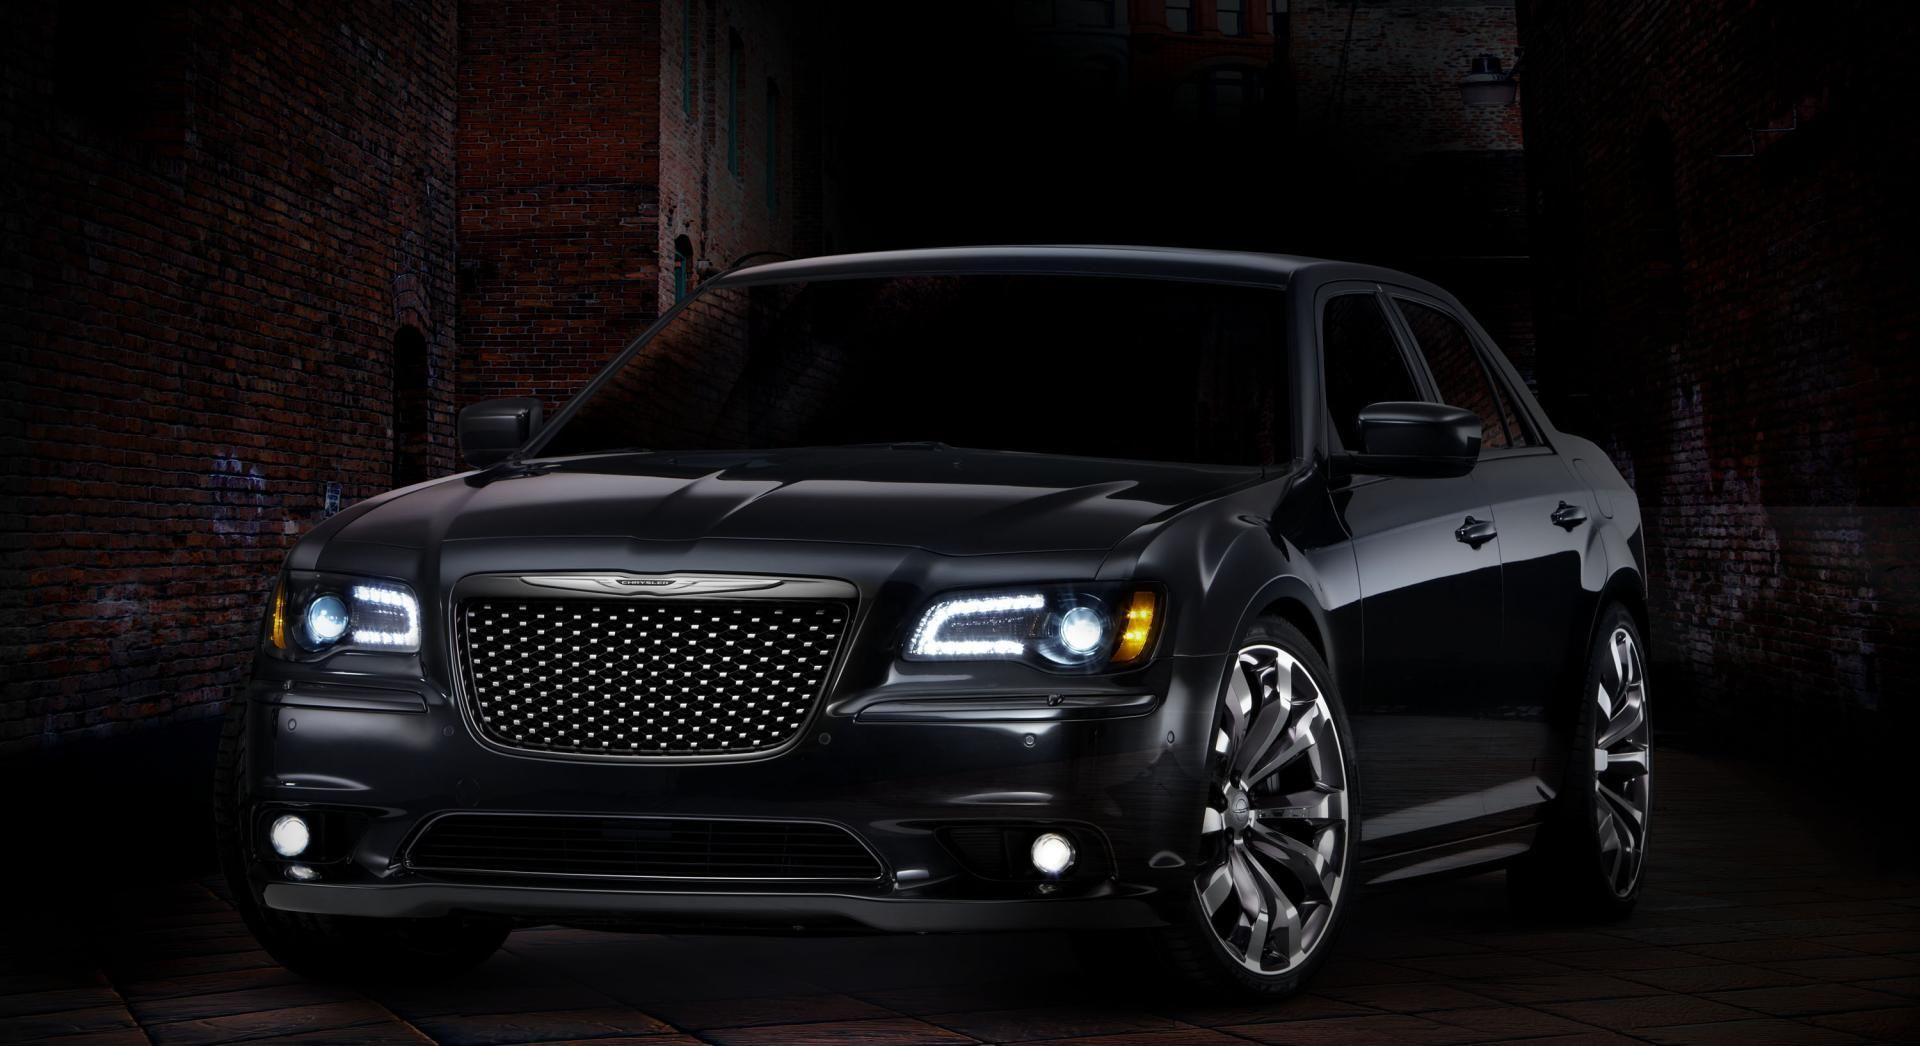 2020 Chrysler 300 S Awd Price Review And Specs Rumor Mobil